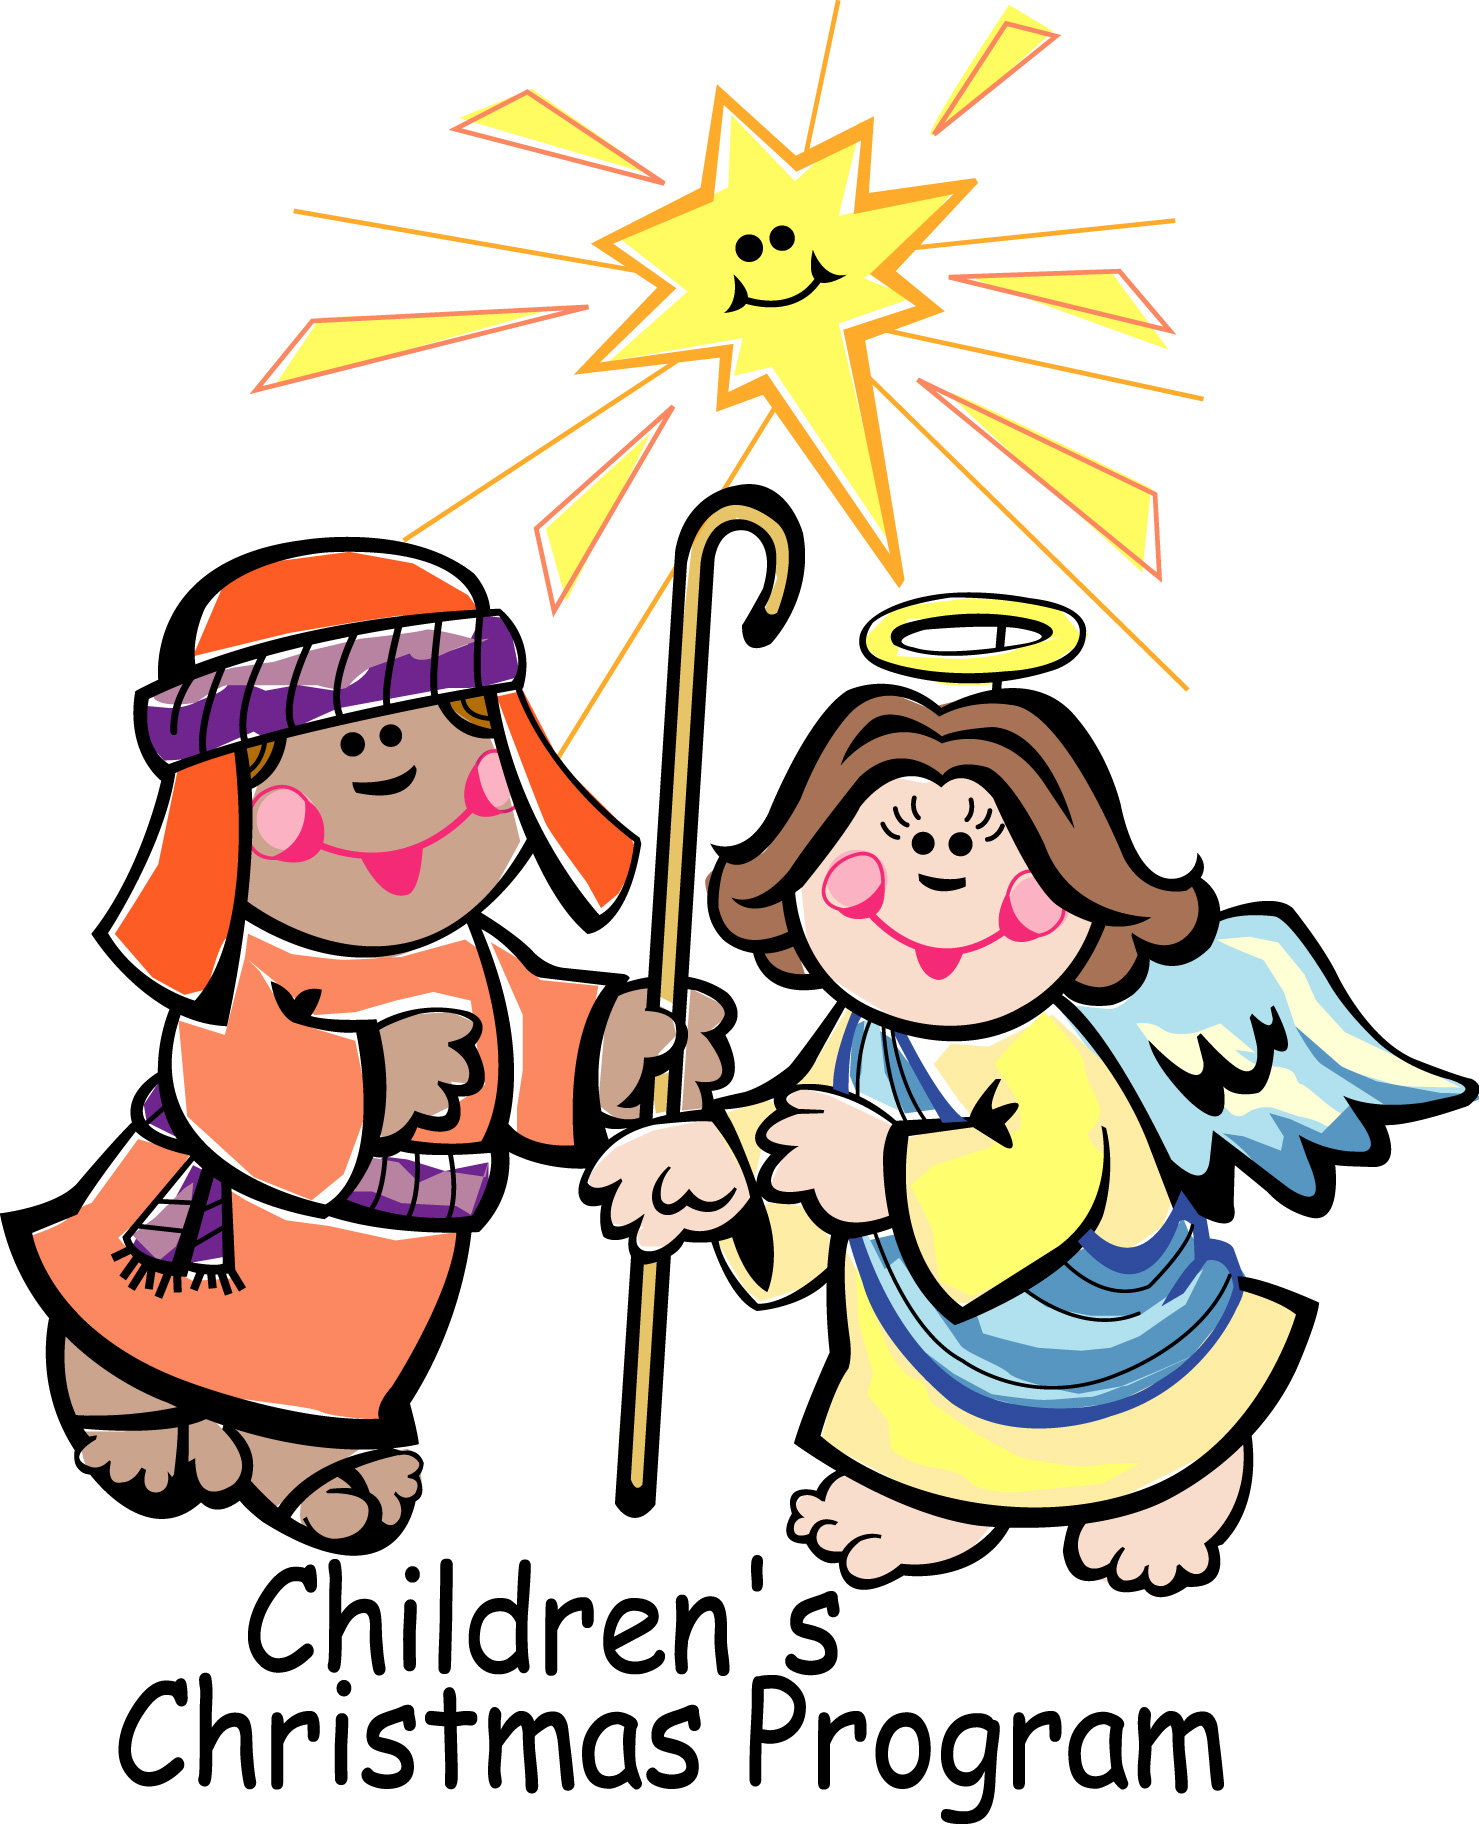 Free Christmas Program Cliparts, Download Free Clip Art.